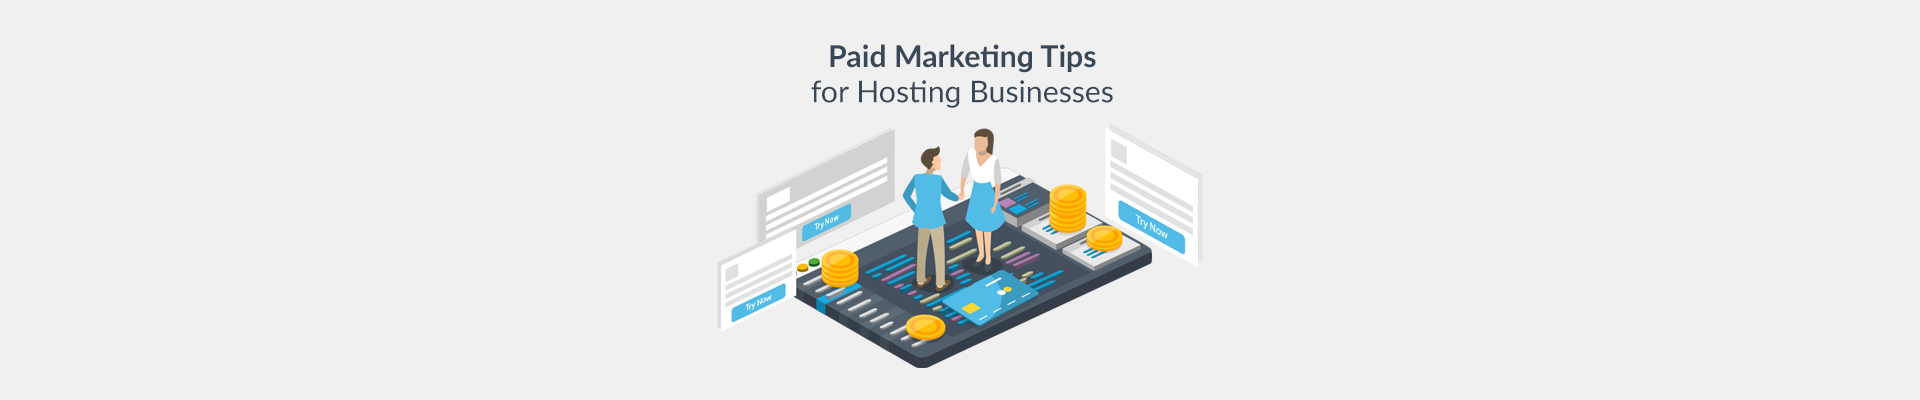 Paid Marketing Tips for Hosting Businesses - Plesk Partners